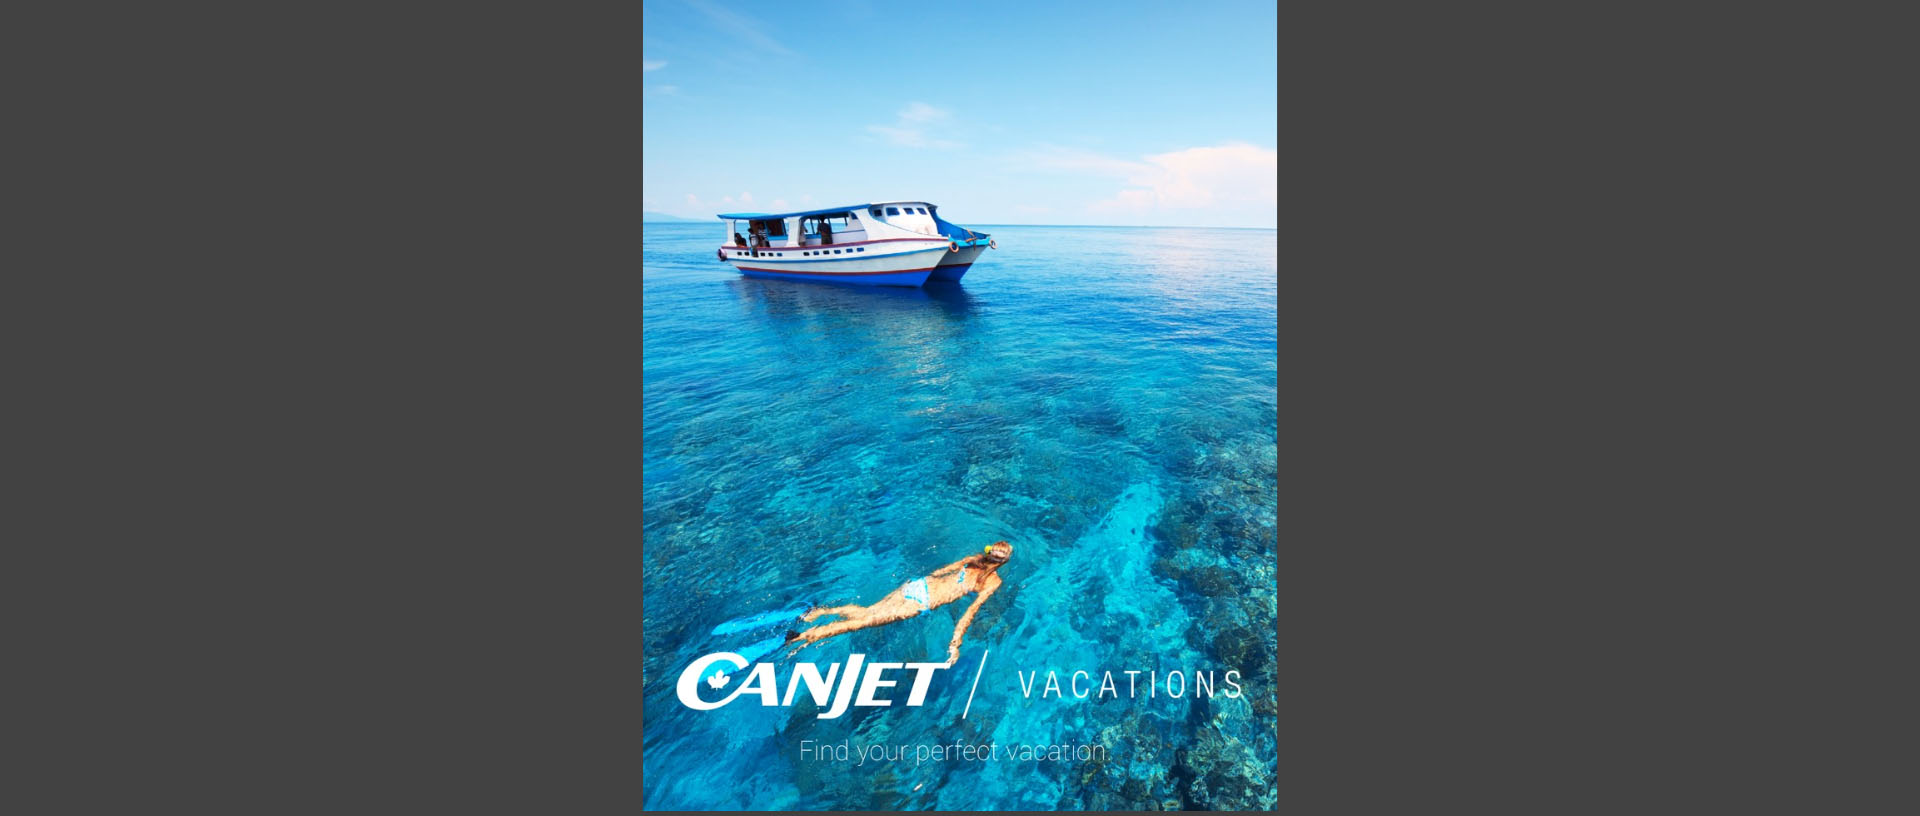 CanJet Vacations offers launch incentive